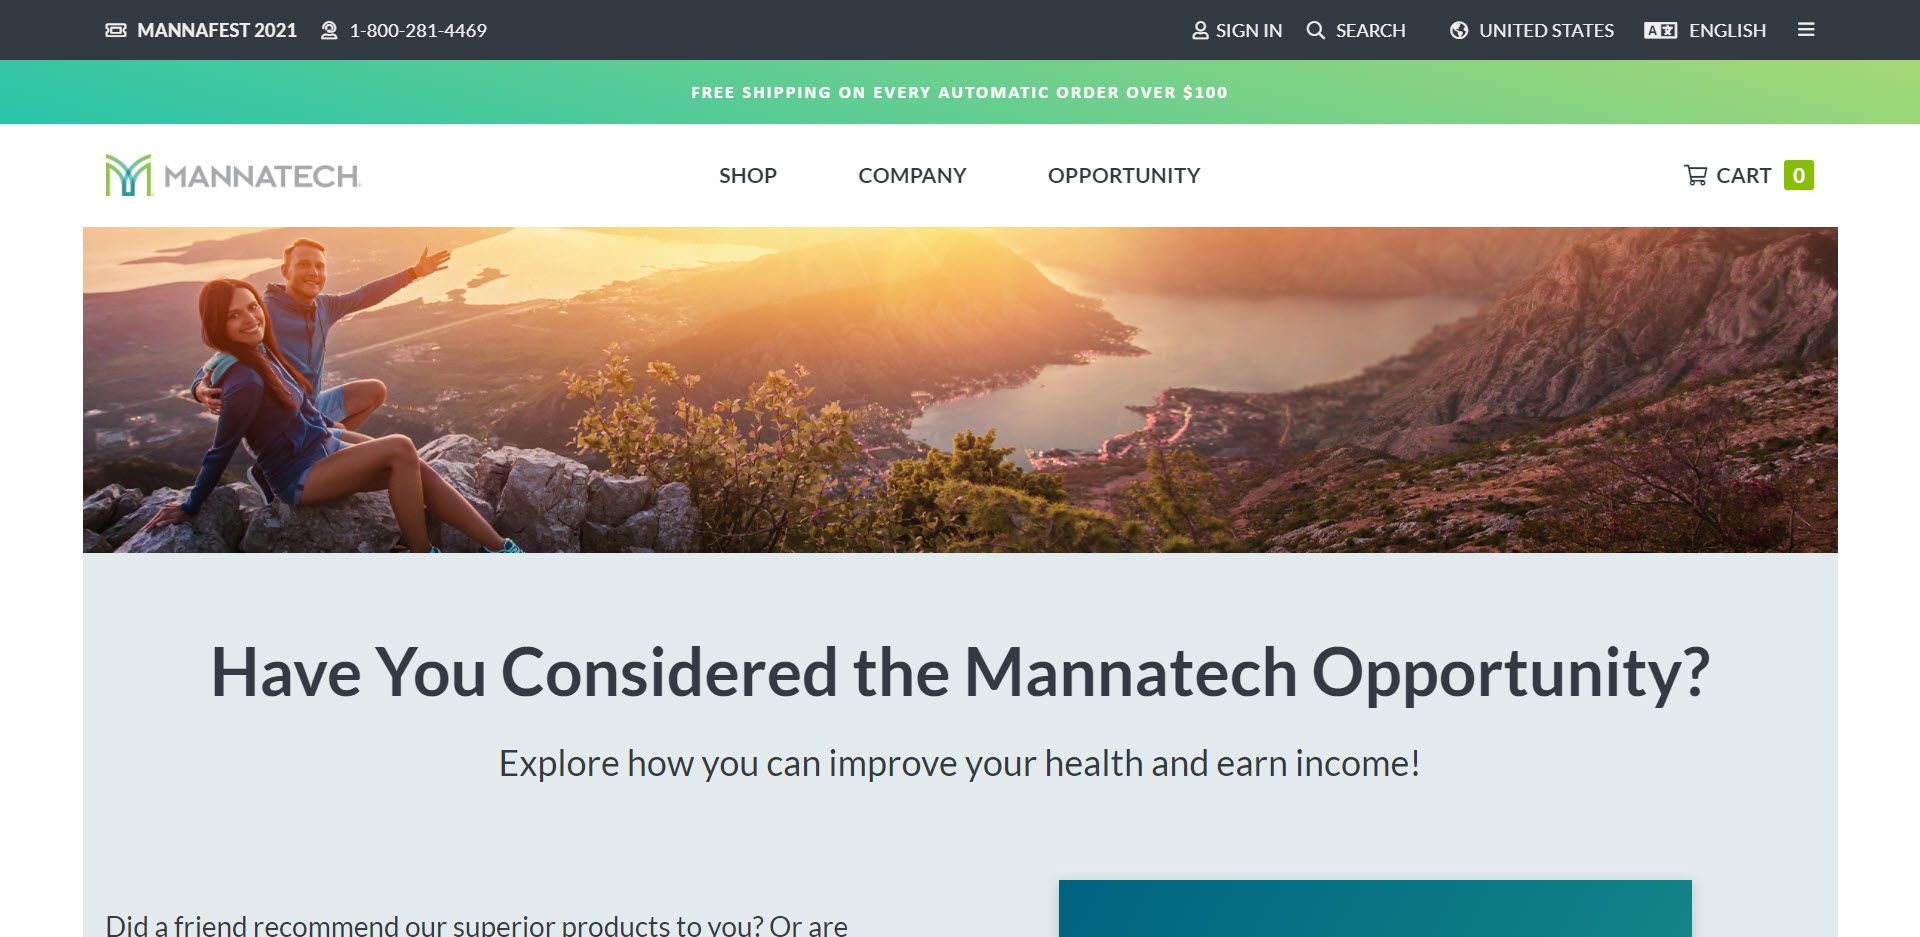 Mannatech MLM Review - Opportunity